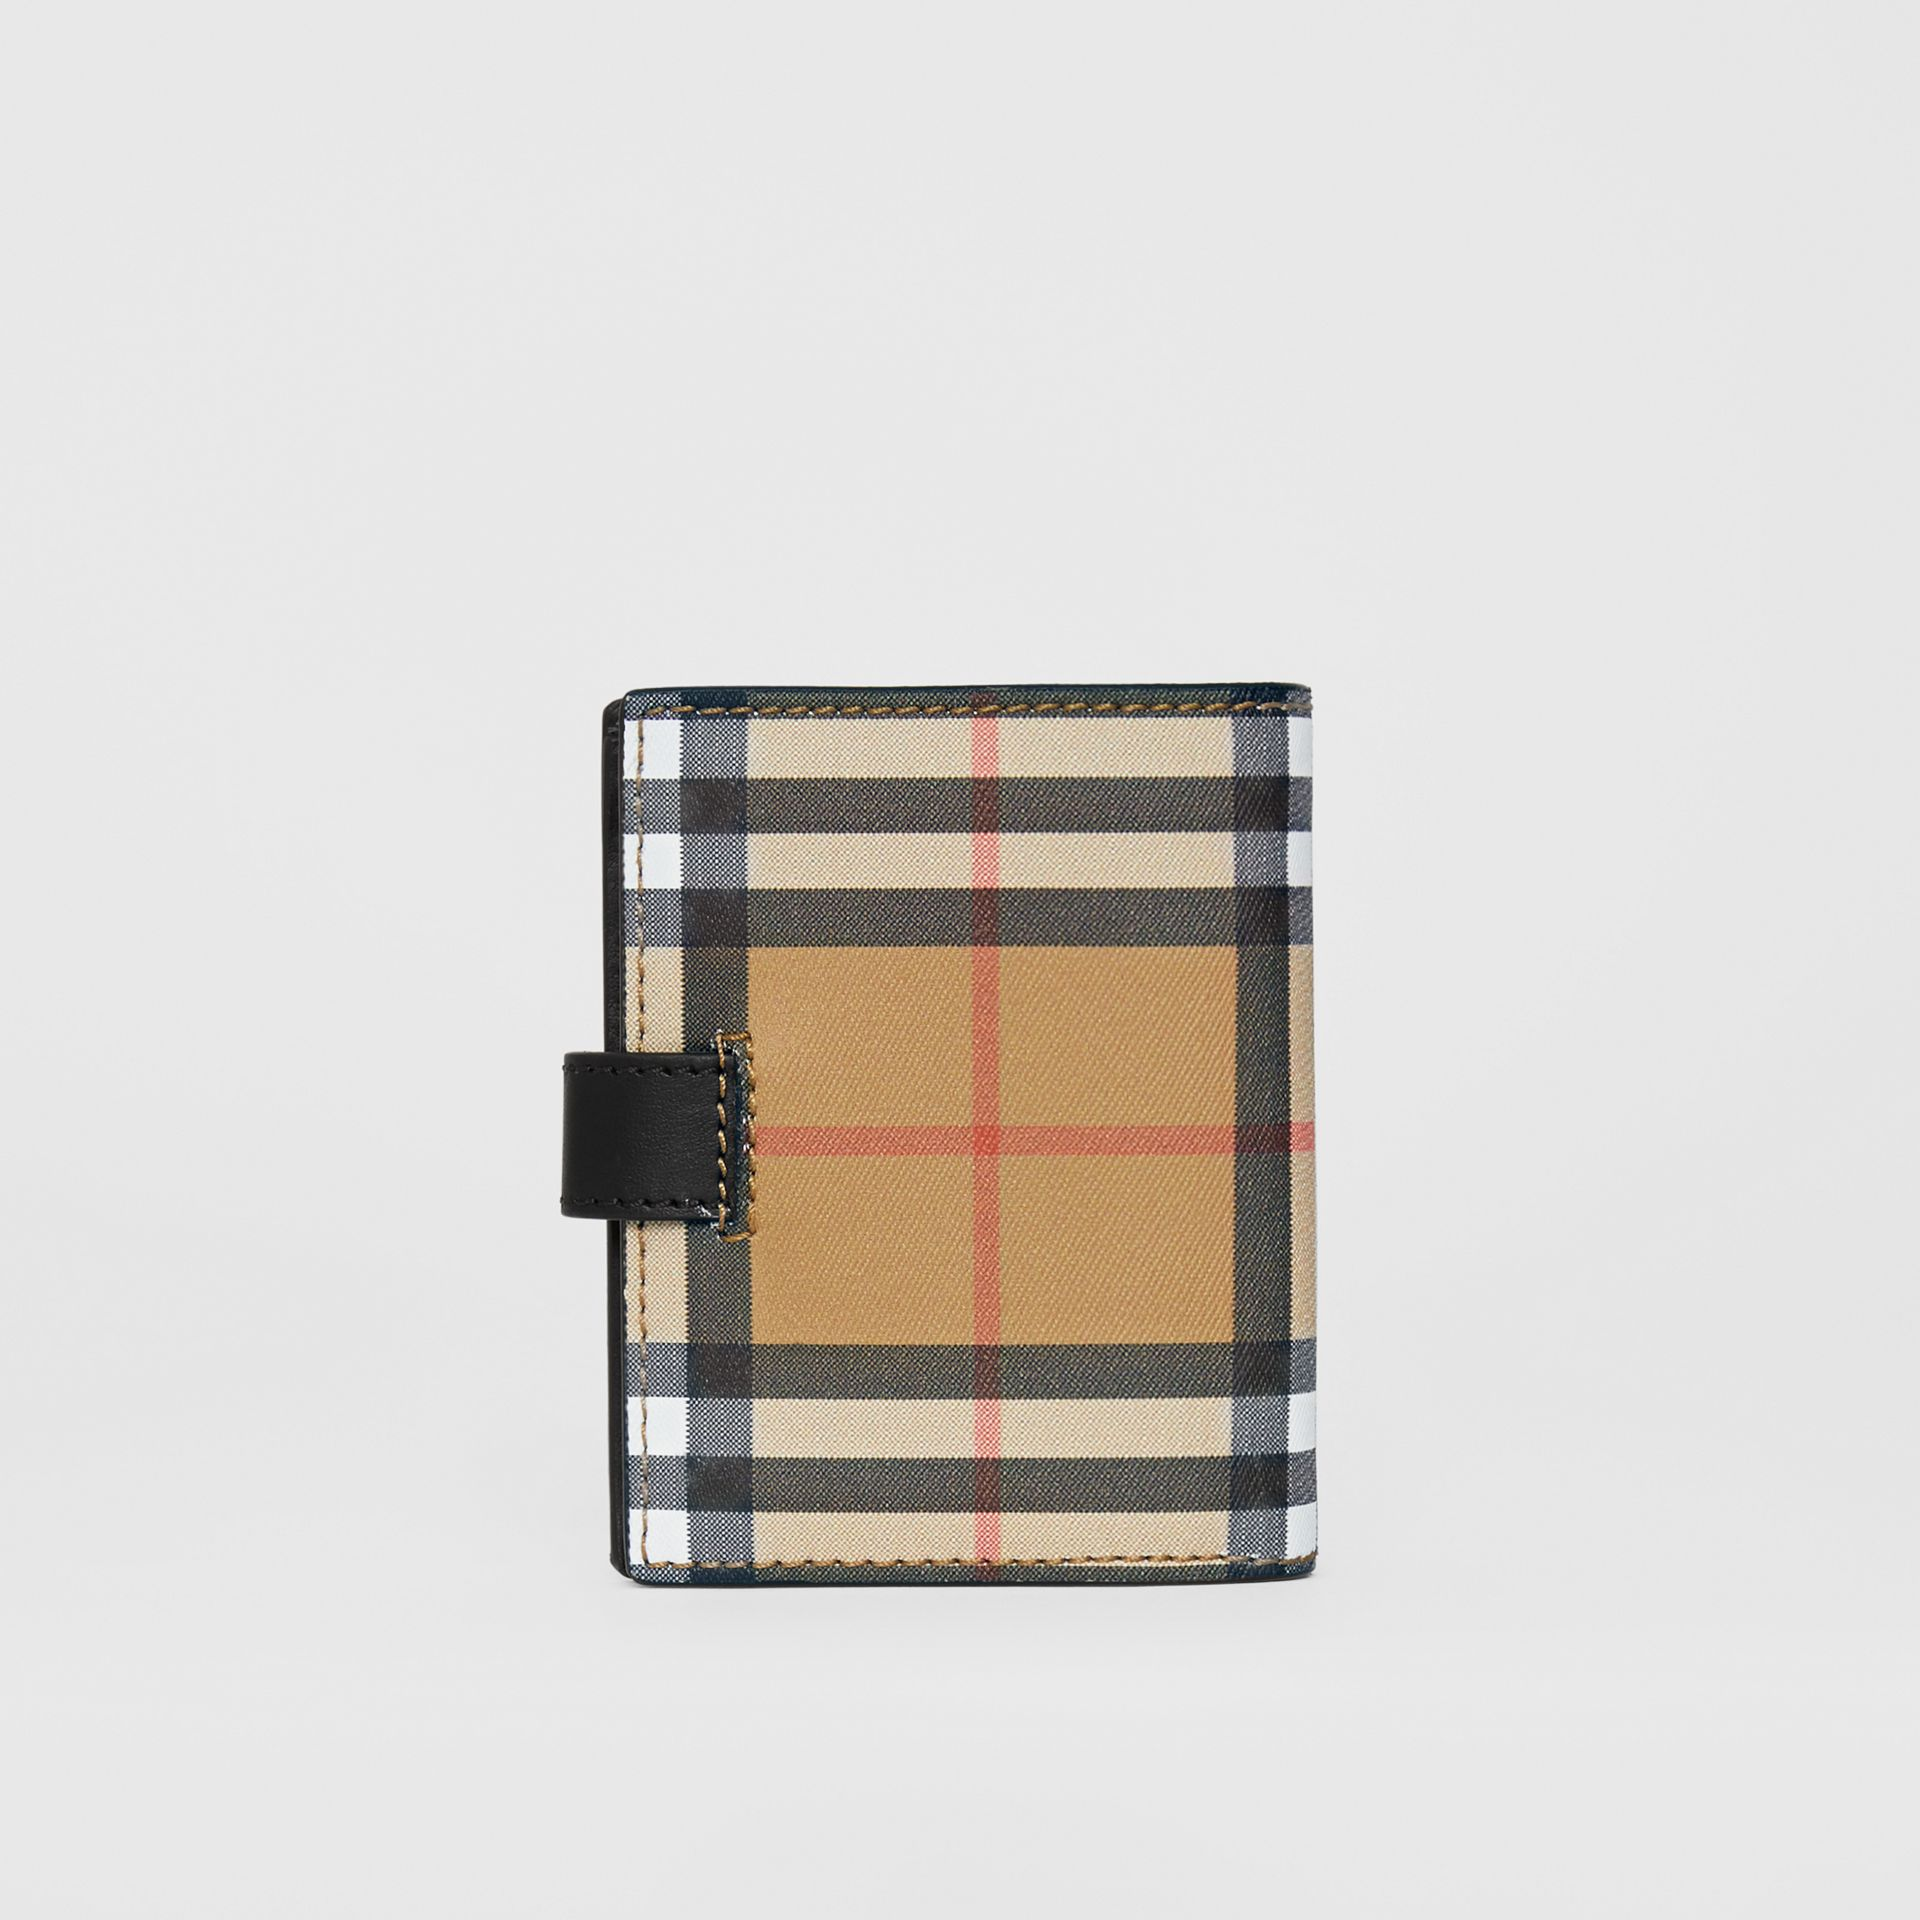 Small Vintage Check and Leather Folding Wallet in Black - Women | Burberry Canada - gallery image 2